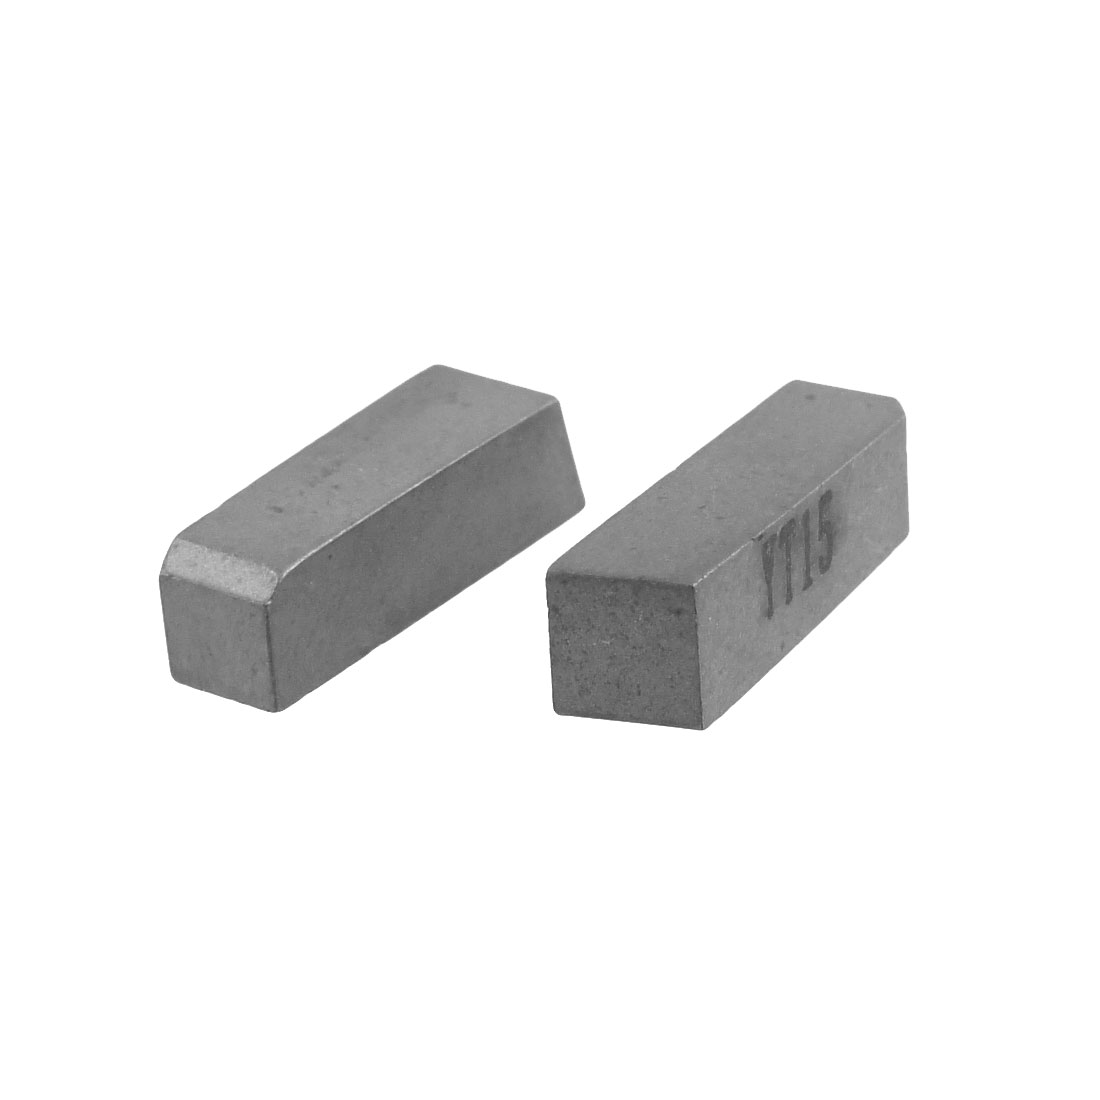 2-Pcs-Welding-Blade-Hard-Alloy-Square-Cemented-Carbide-Inserts